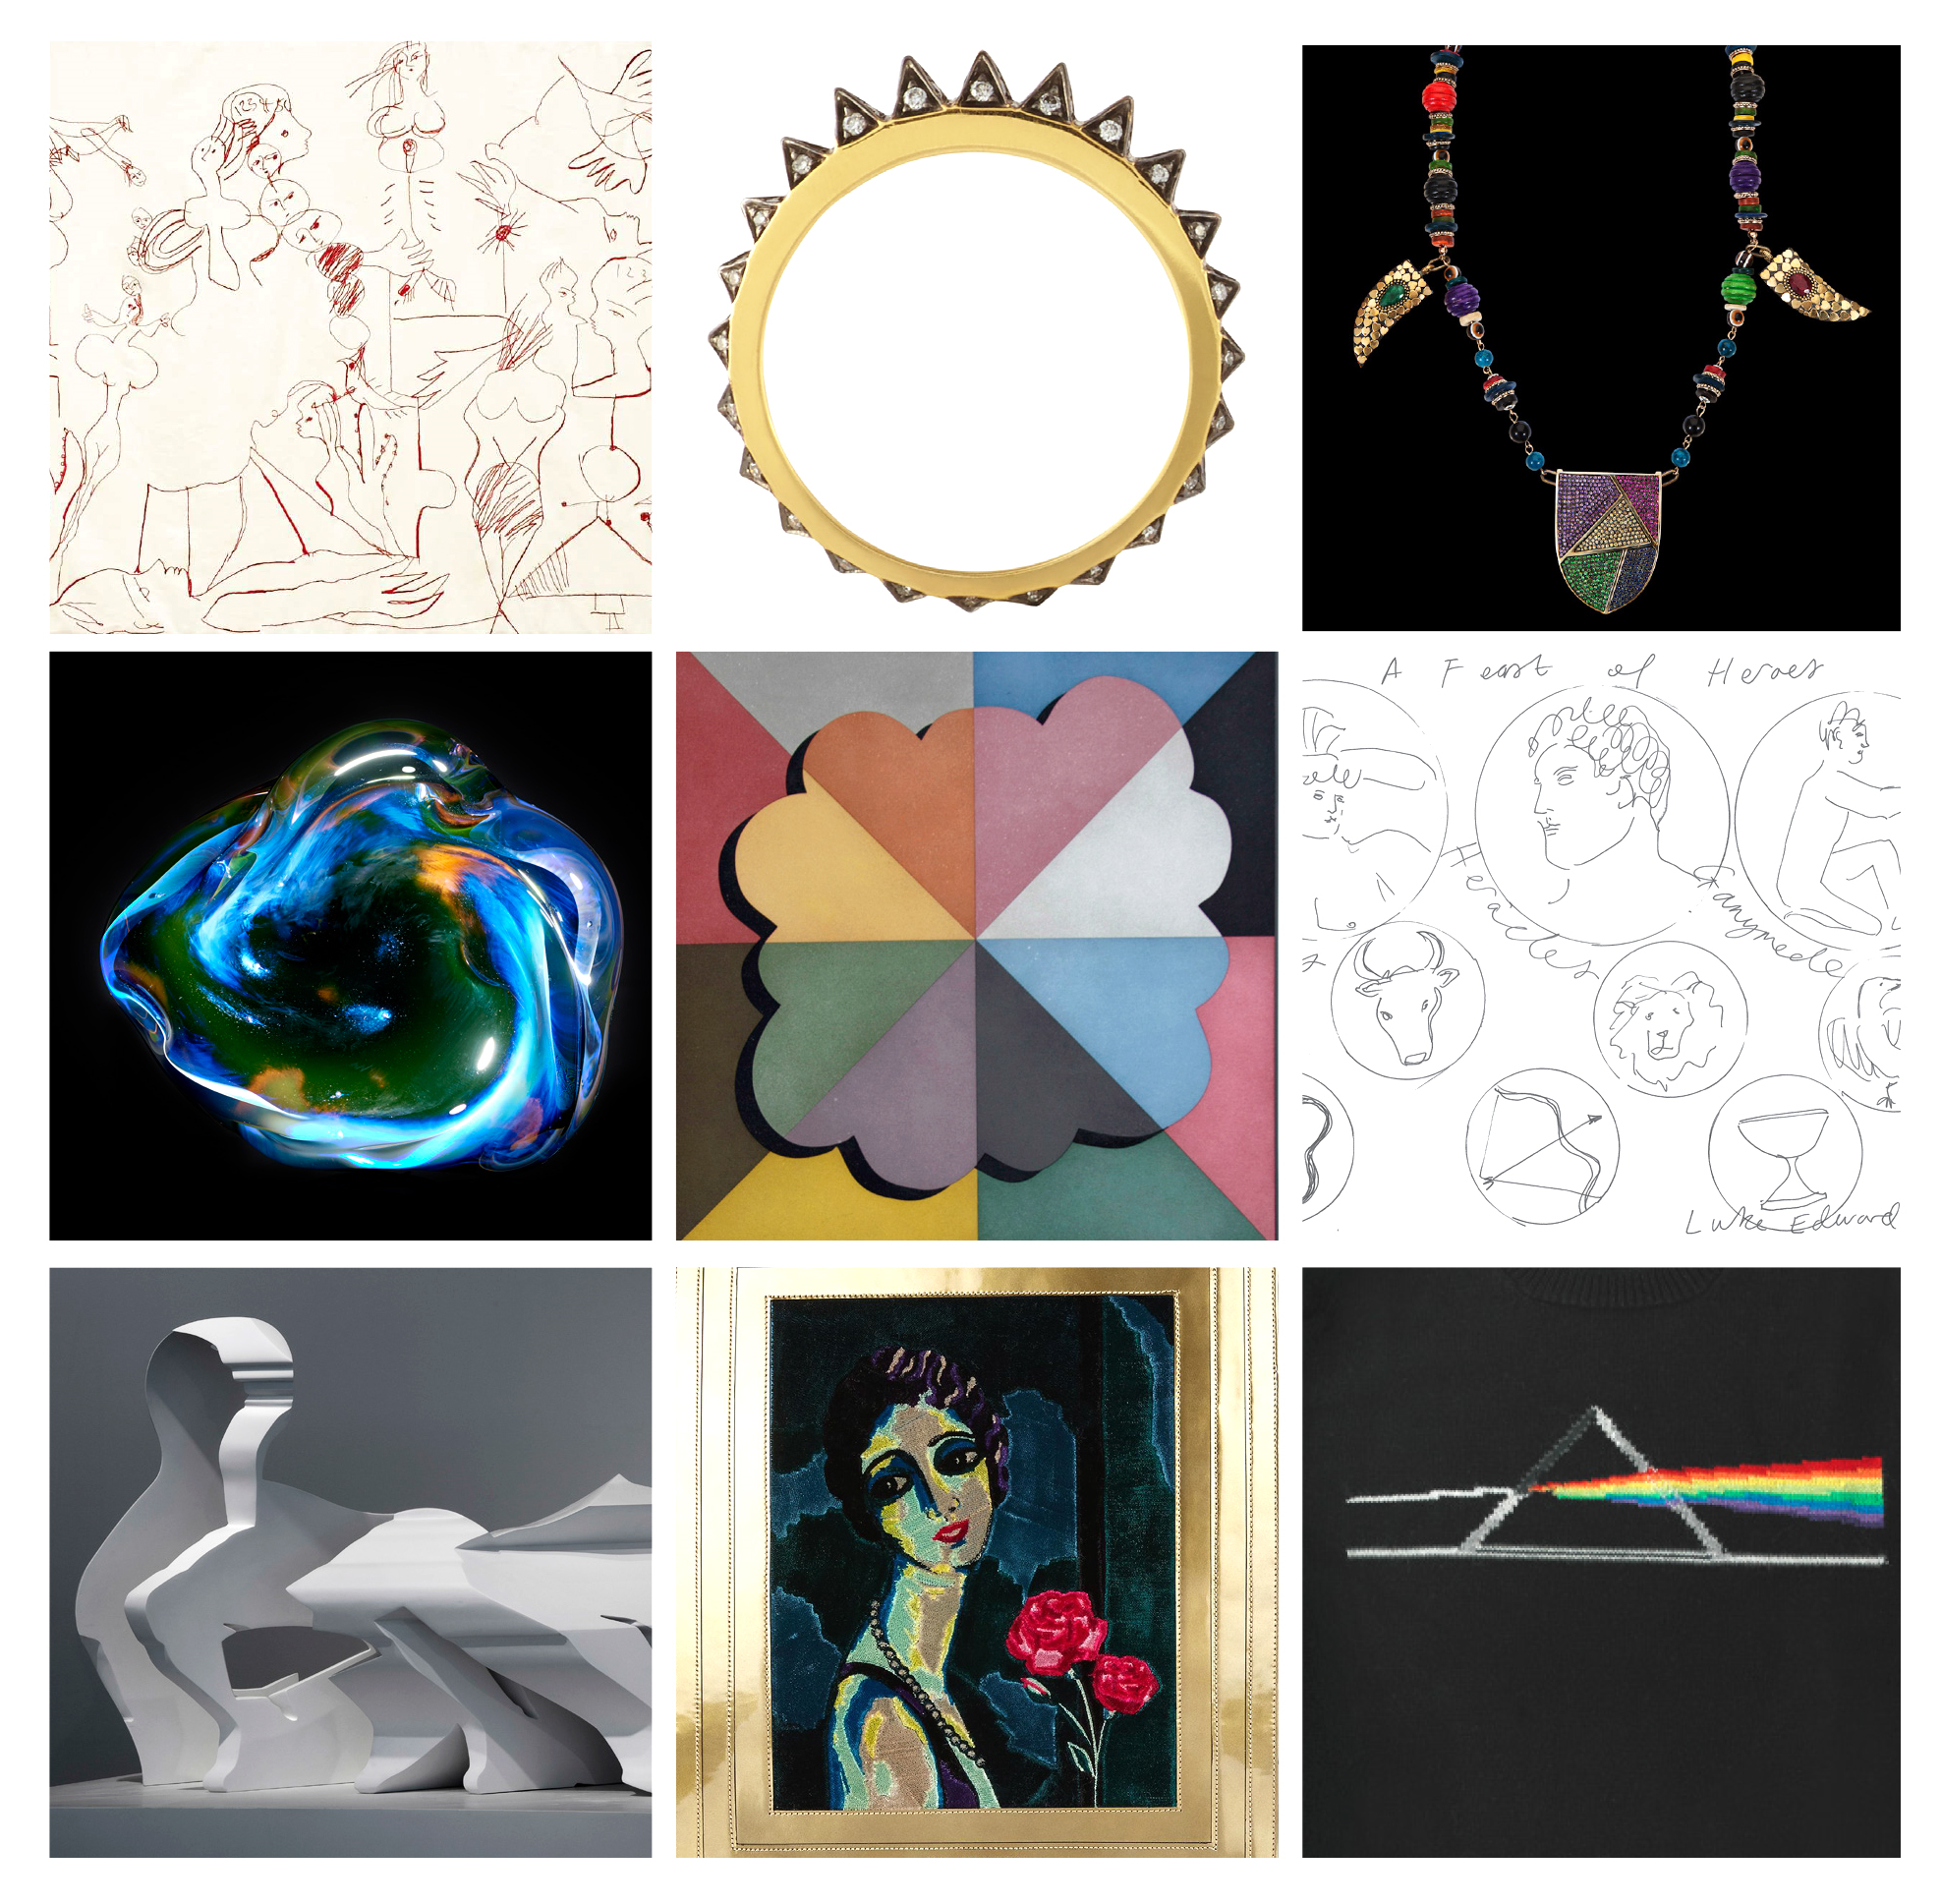 YOUNG BRIGHT THINGS Curated by Gianluca Longo April 20th - May 12th  Flavie Audi, Tancredi di Carcaci, Noor Fares, Luke Edward Hall, Nick Hornby, Alexander Lewis, Annie Morris, Charlotte Olympia, Petra Palumbo with Rhys Coren, Jordana Yechiel